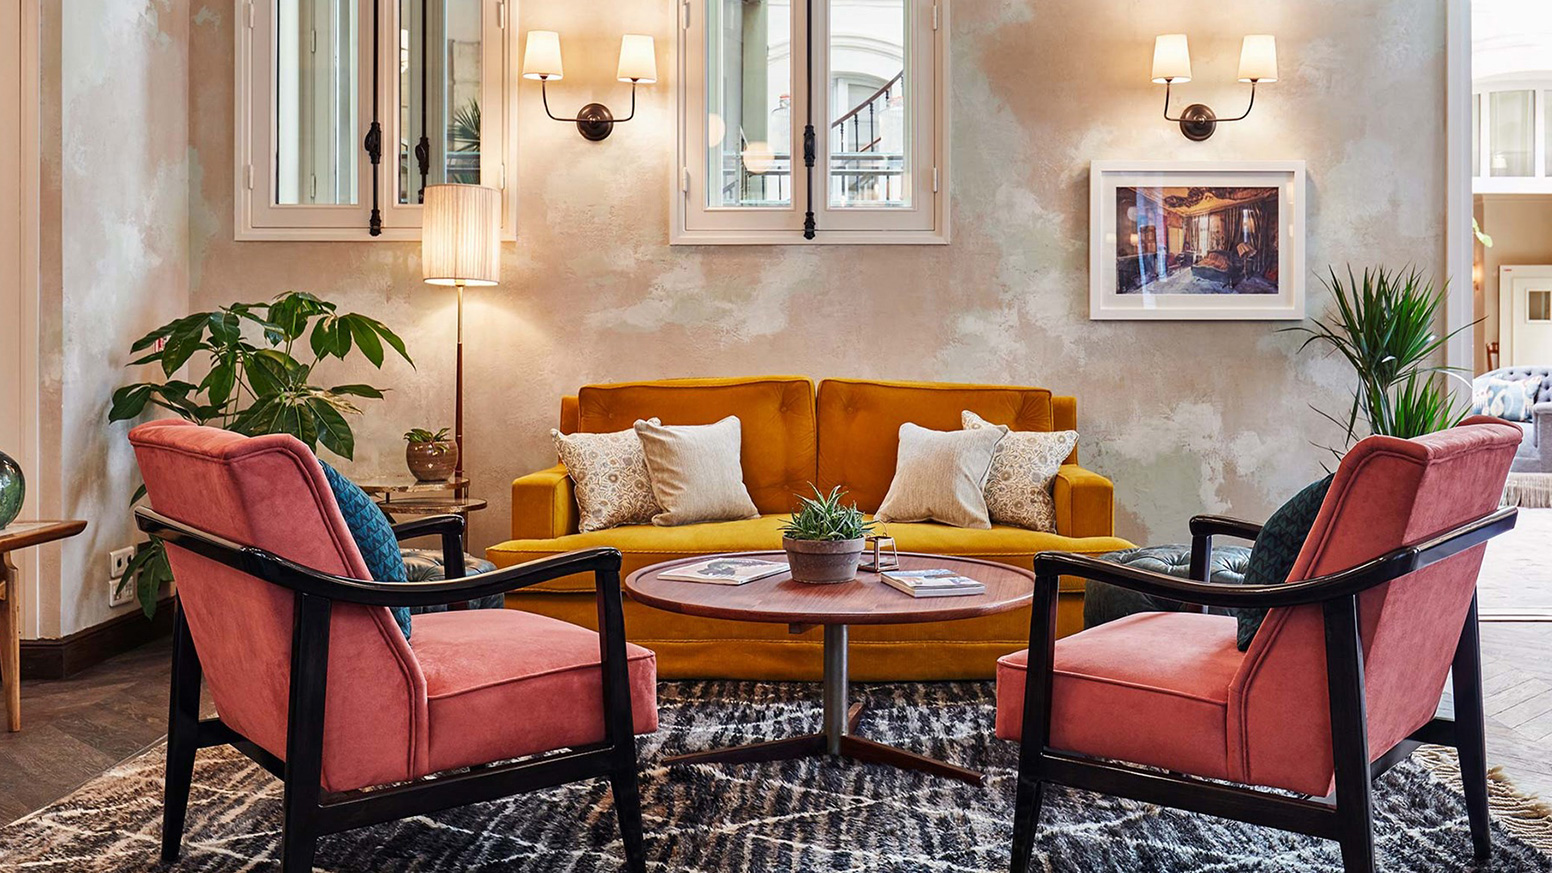 The Cool Paris Hotel To Add To Your Bucket List